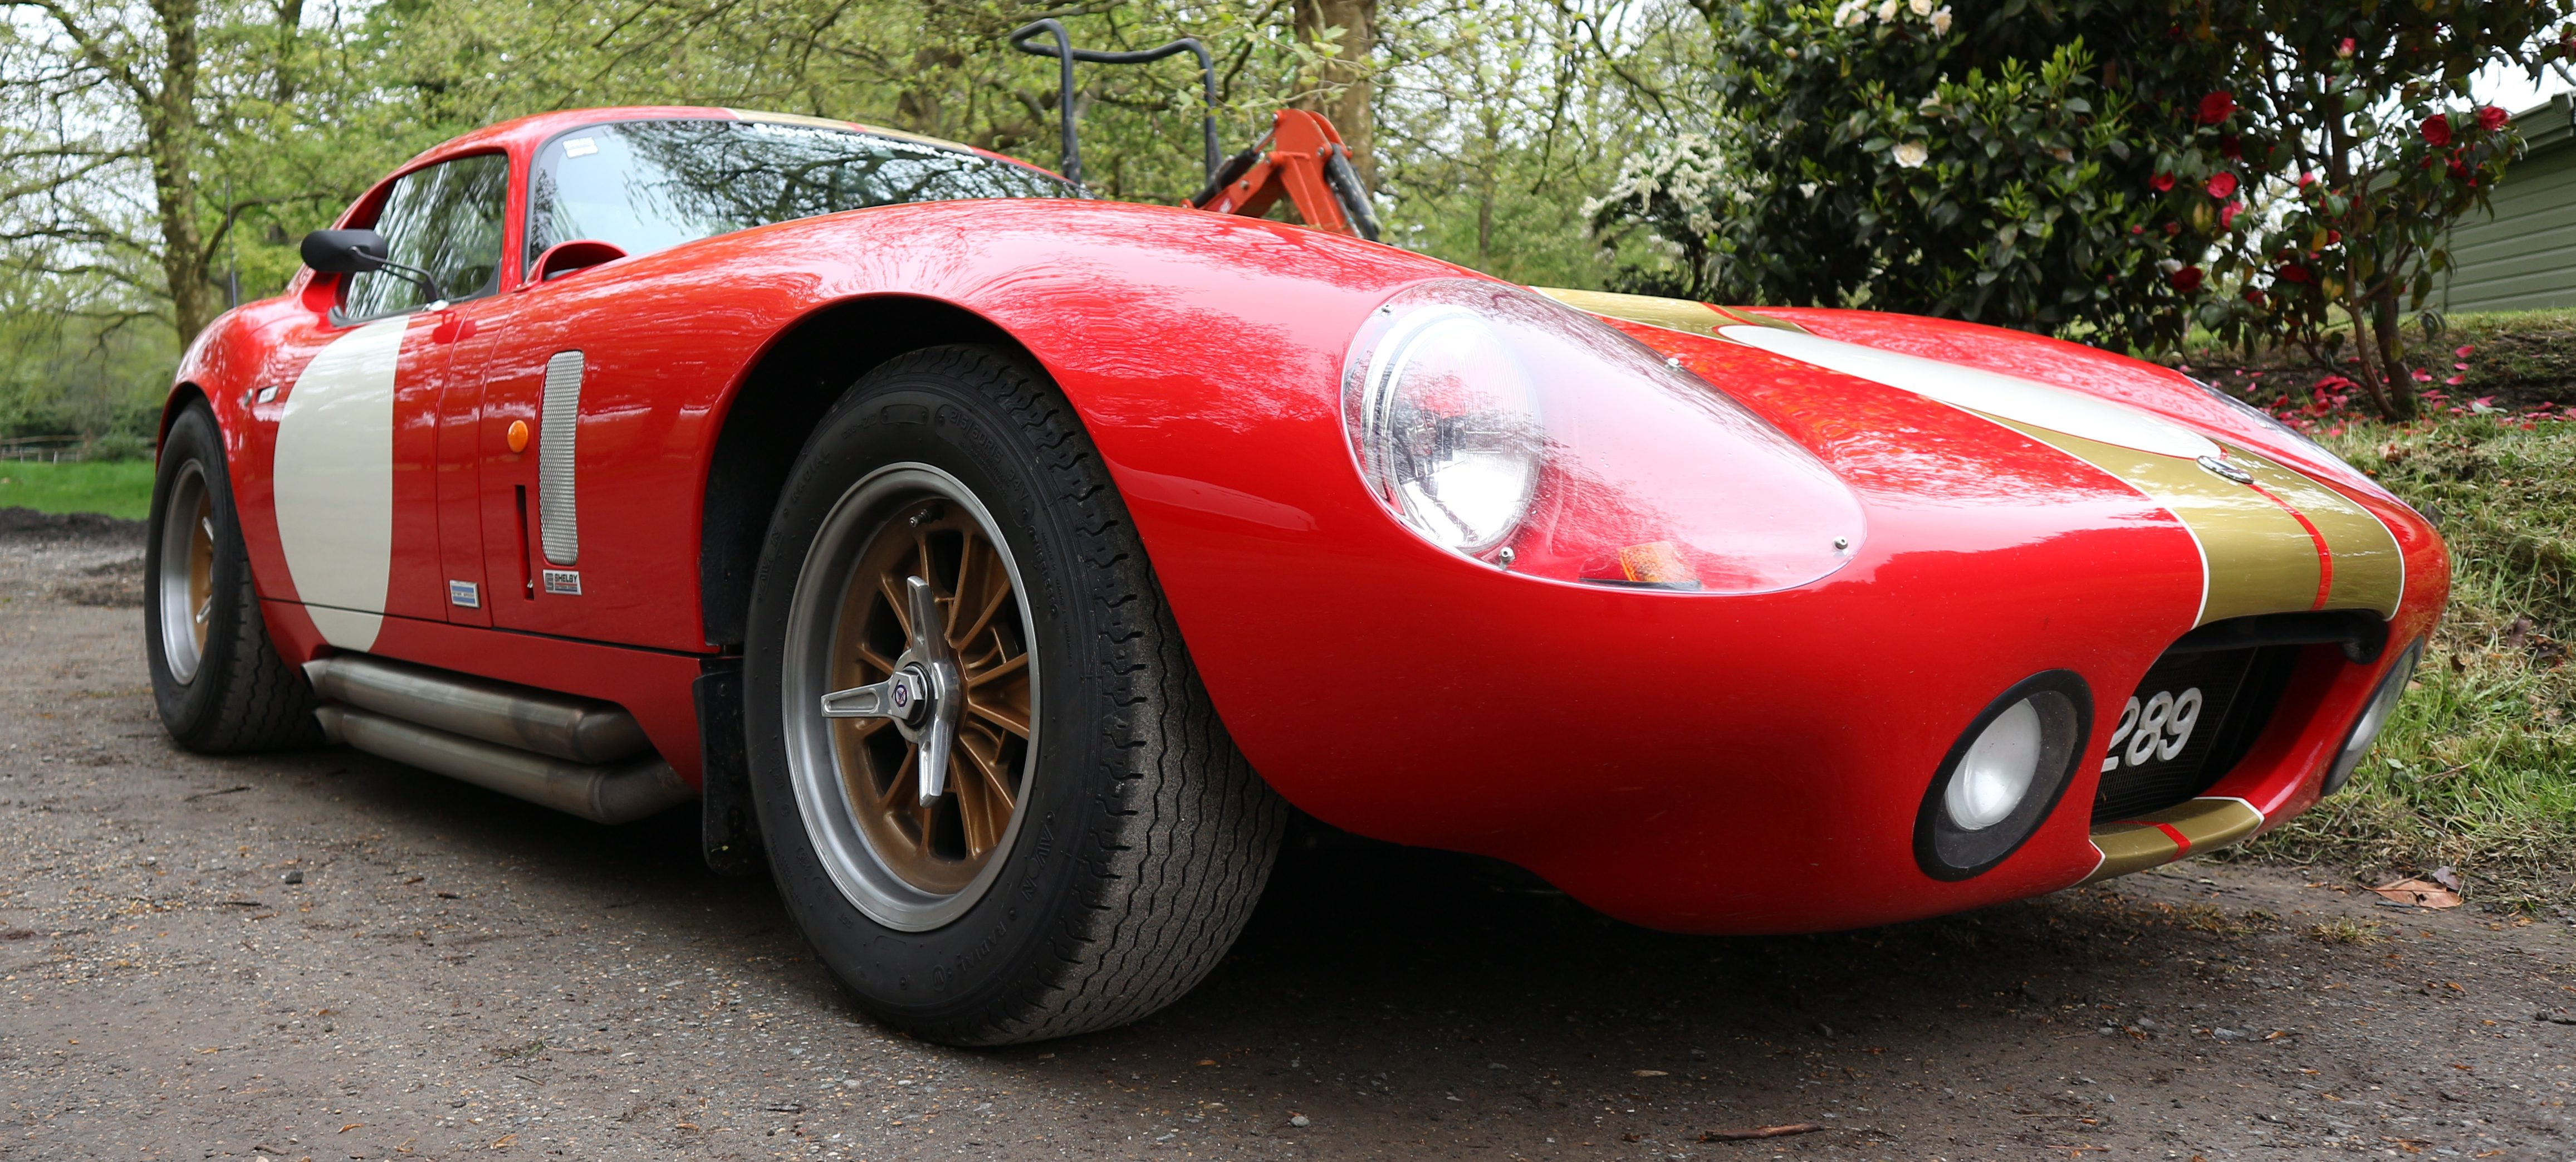 Superformance Shelby Daytona Coupe Review Well Driven Tvr Remote Starter Usually When Someone Starts Talking About Classic Car Replicas To Me My Eyes Start Roll Back And I Daydream Anything Else